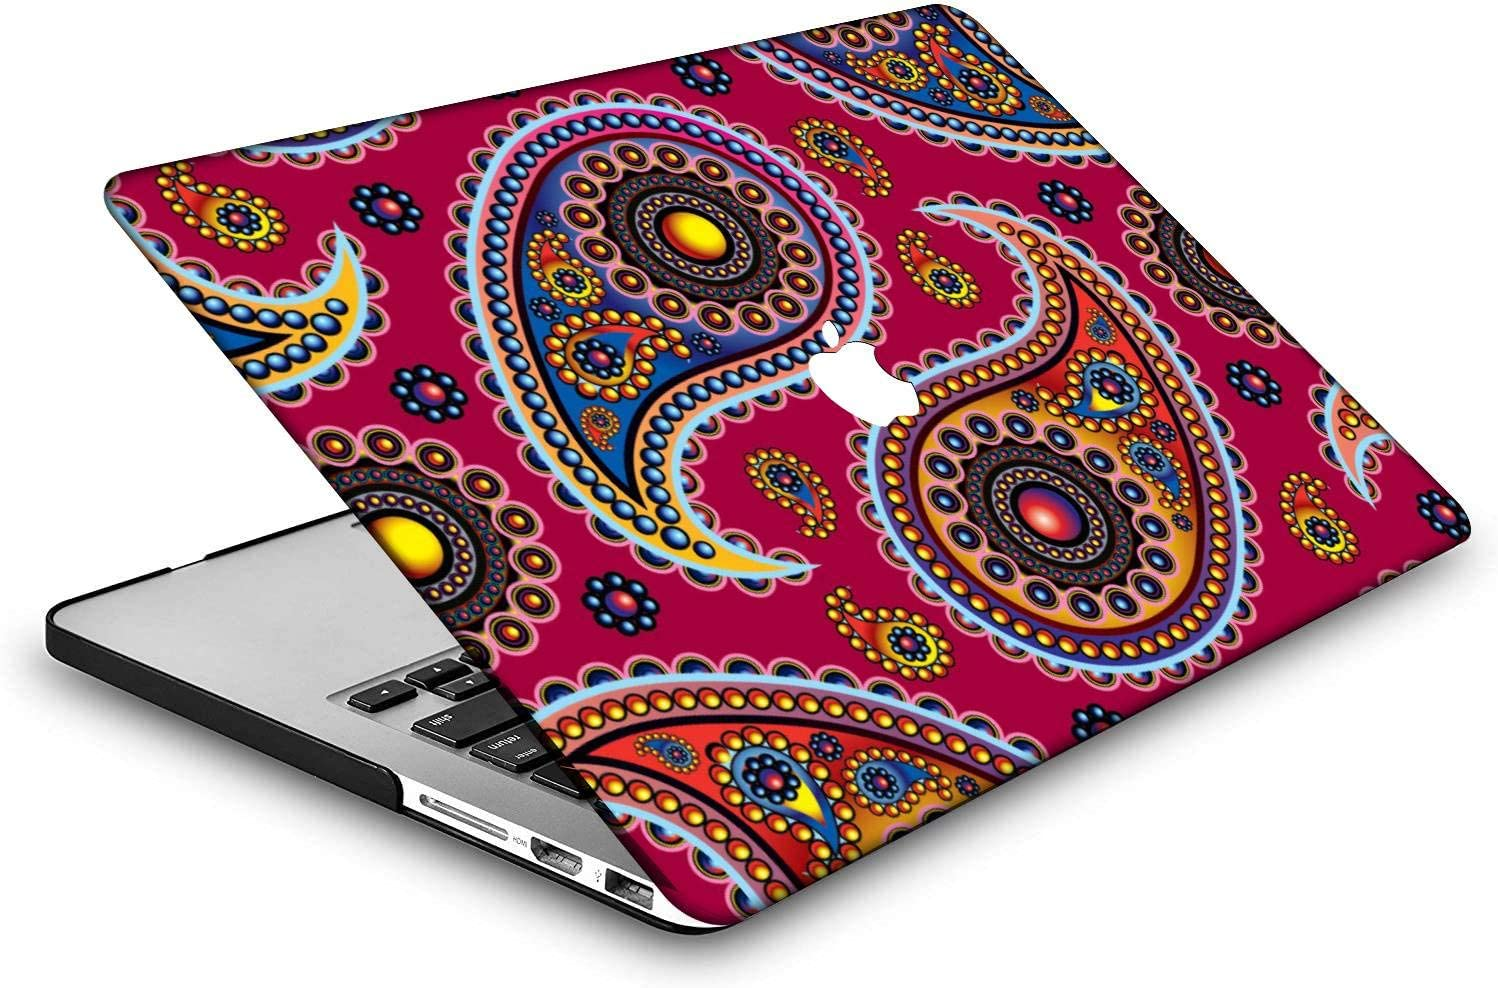 National A 151 Model:A2179//A2337 M1 MingCaiFS Laptop Case for MacBook Air 13 Retina Cut Out Design,Plastic Pattern Ultra Slim Light Hard case Keyboard Cover Touch ID